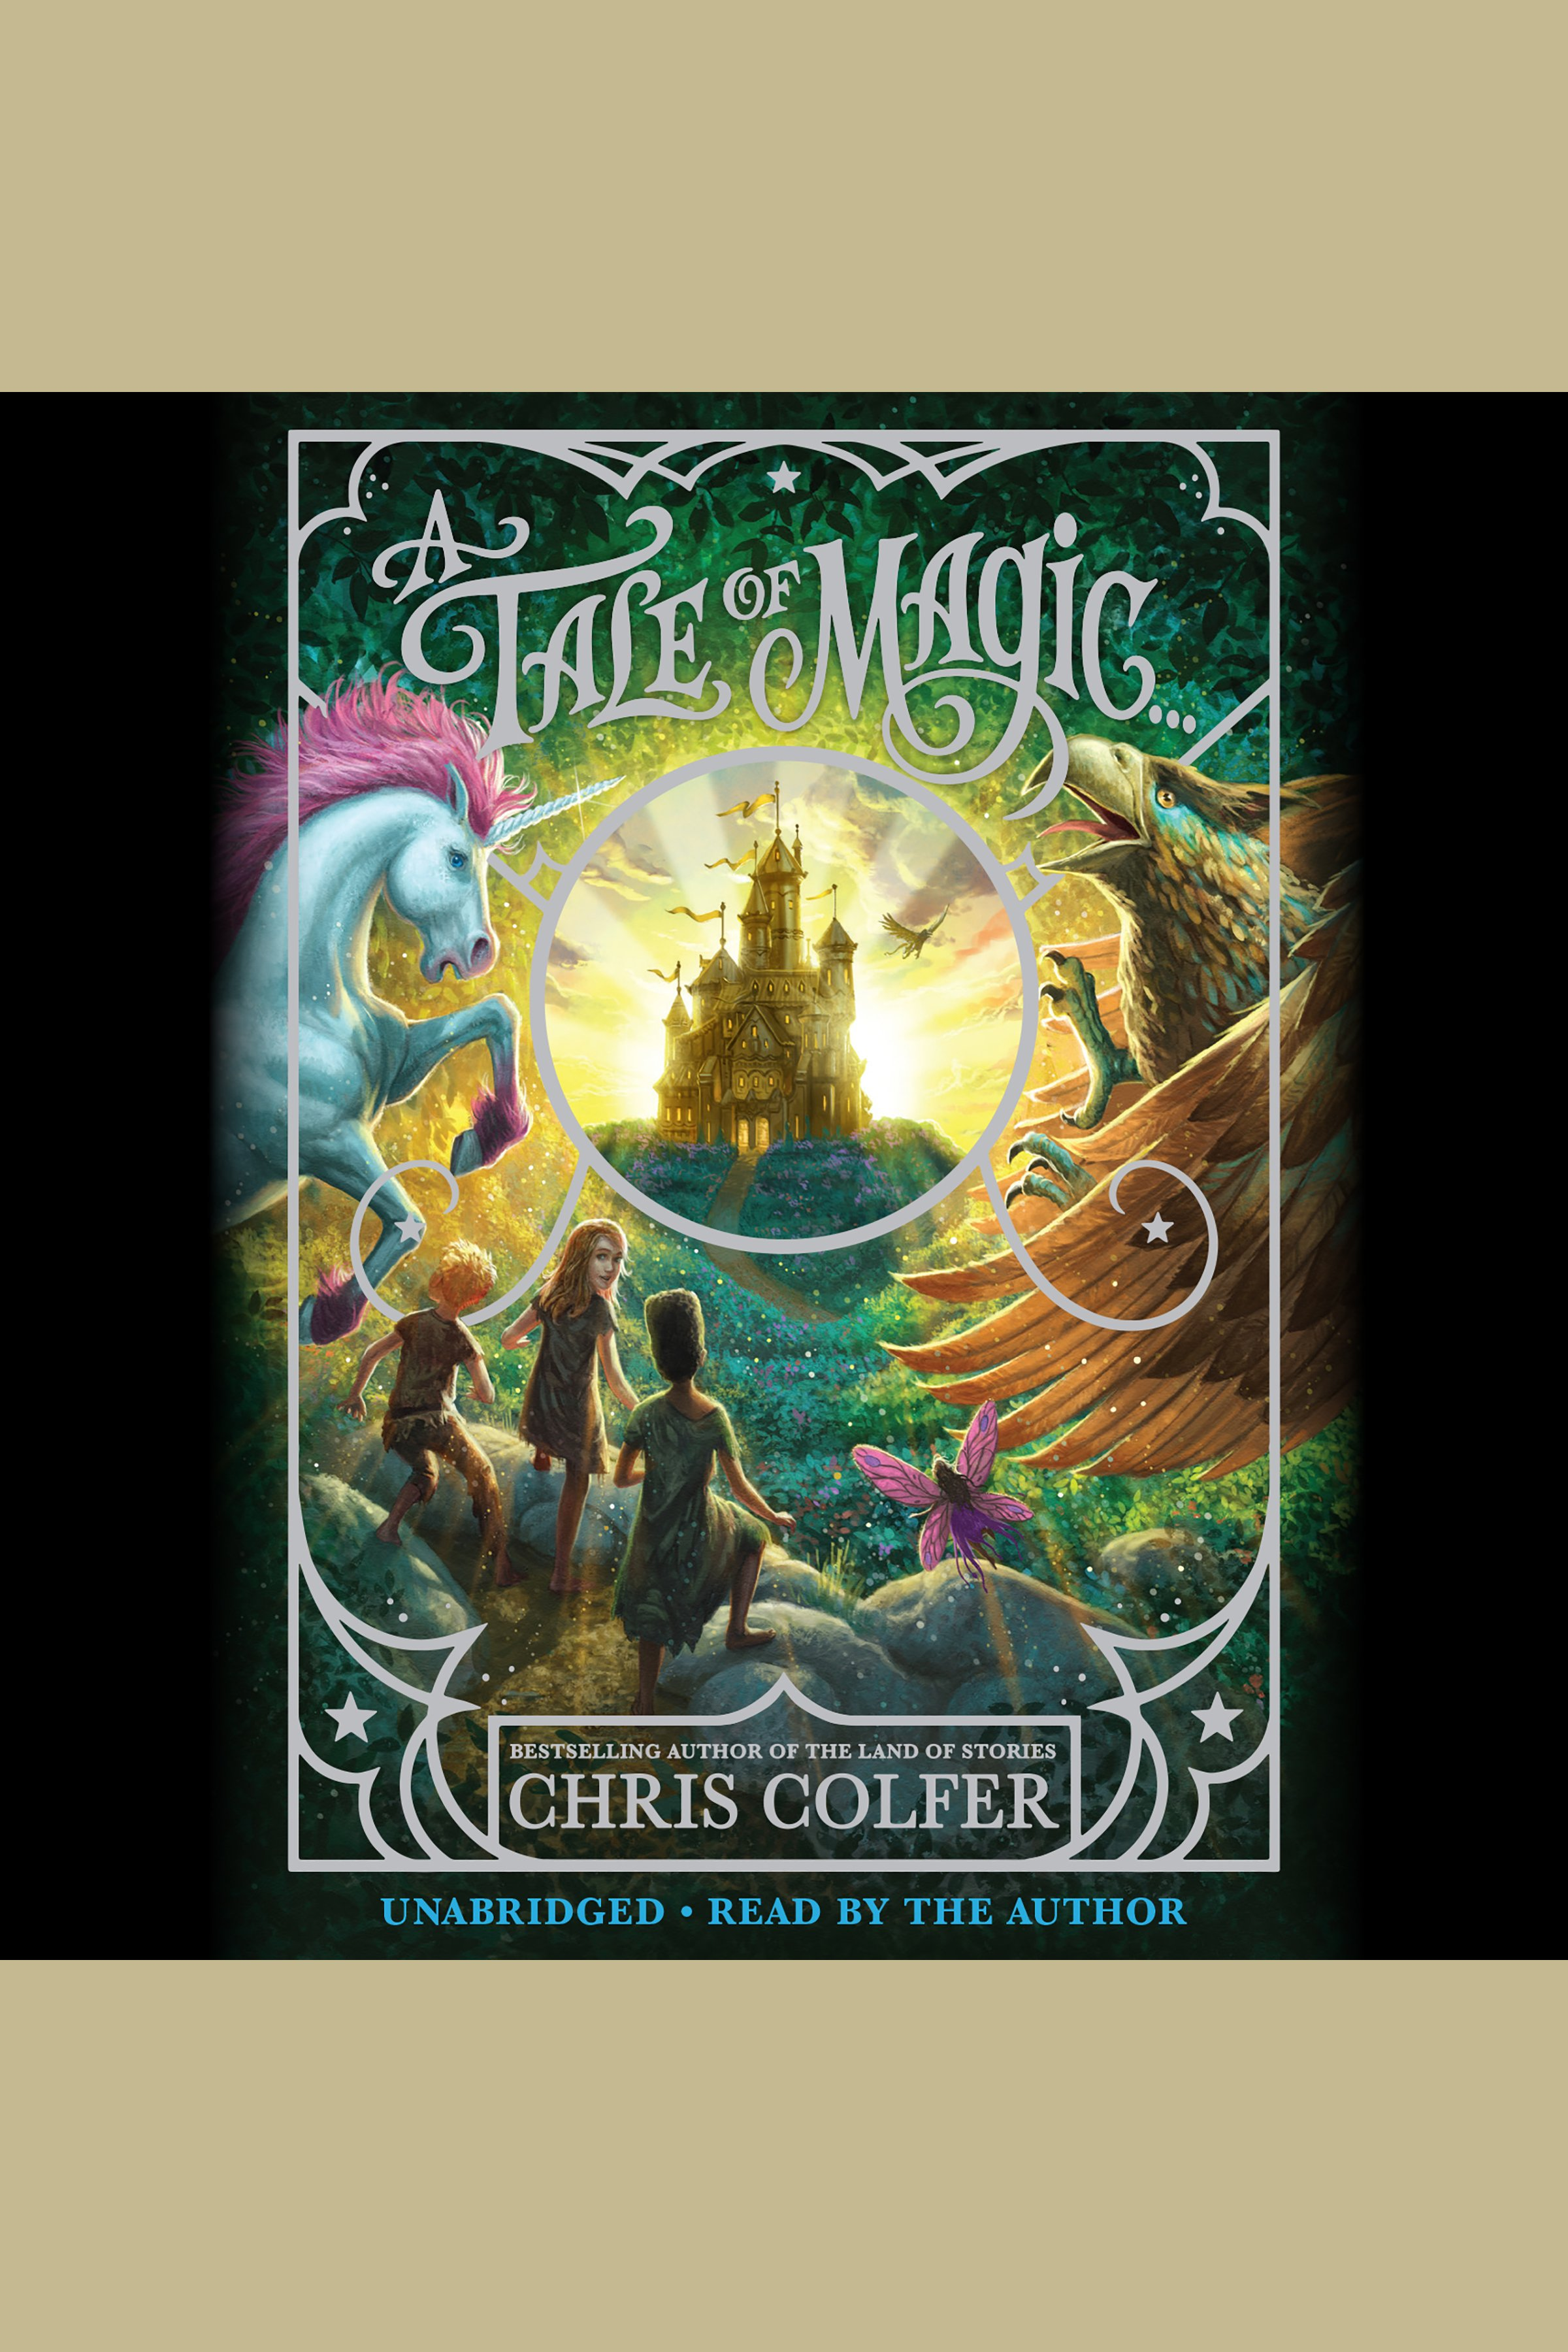 A tale of magic cover image